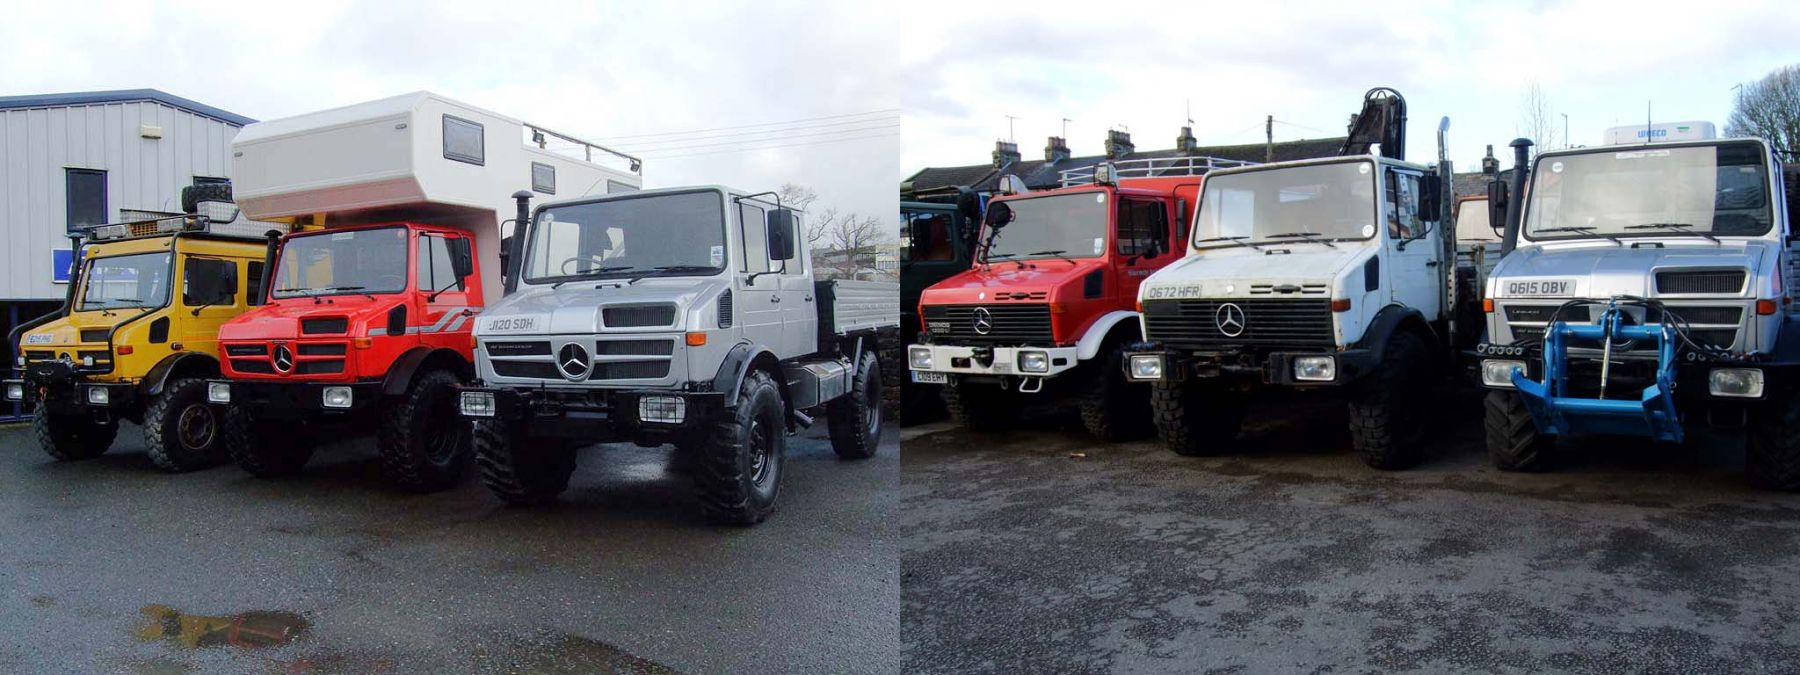 To See Unimog Comparison We're the Place to Be